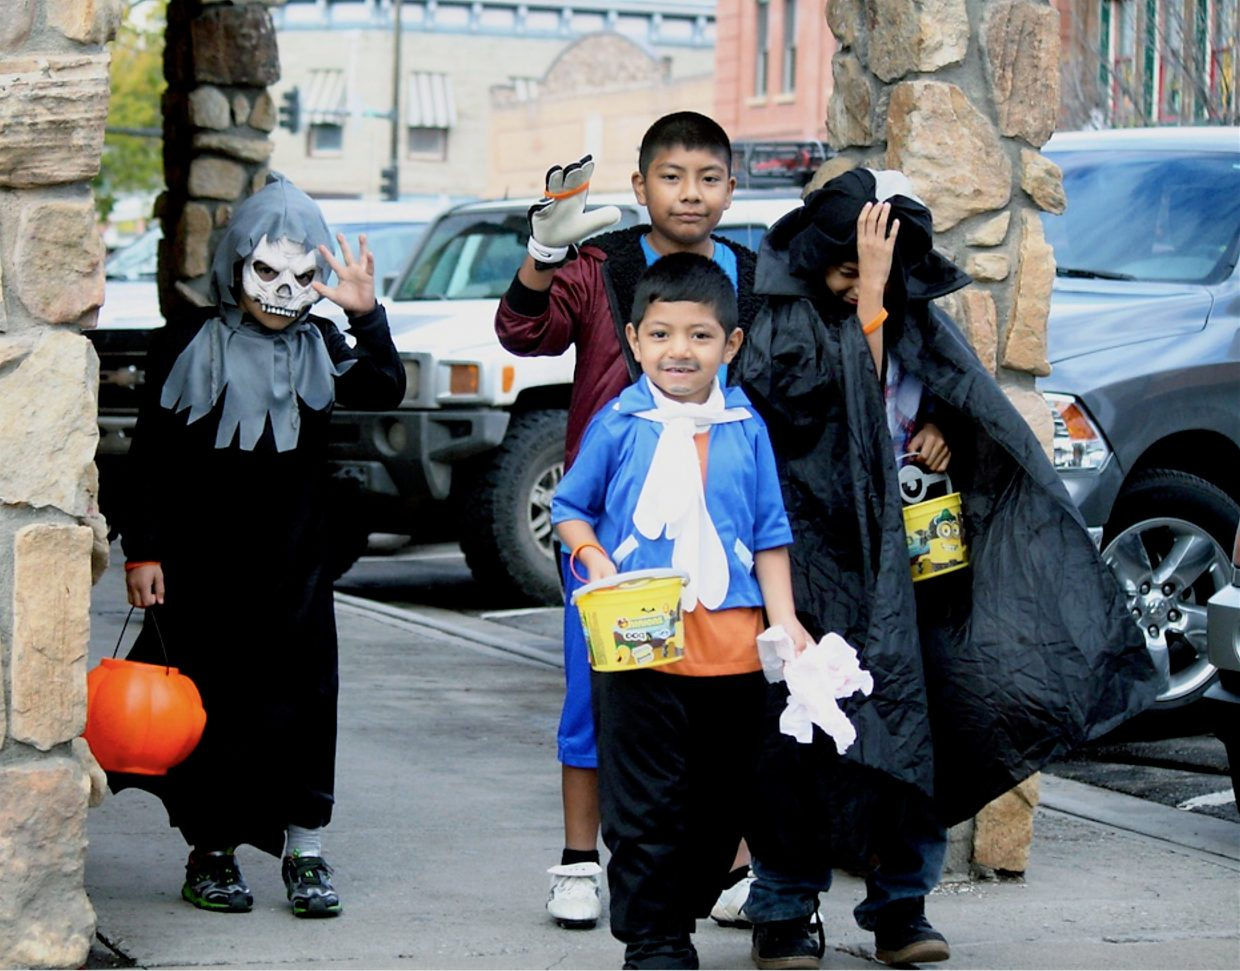 Trick-or-treaters make their way down Third Street during the annual Rifle Branch Library Halloween Parade Friday, Oct. 30. Nearly 500 costumed trick-or-treaters and parents turned out for the event.